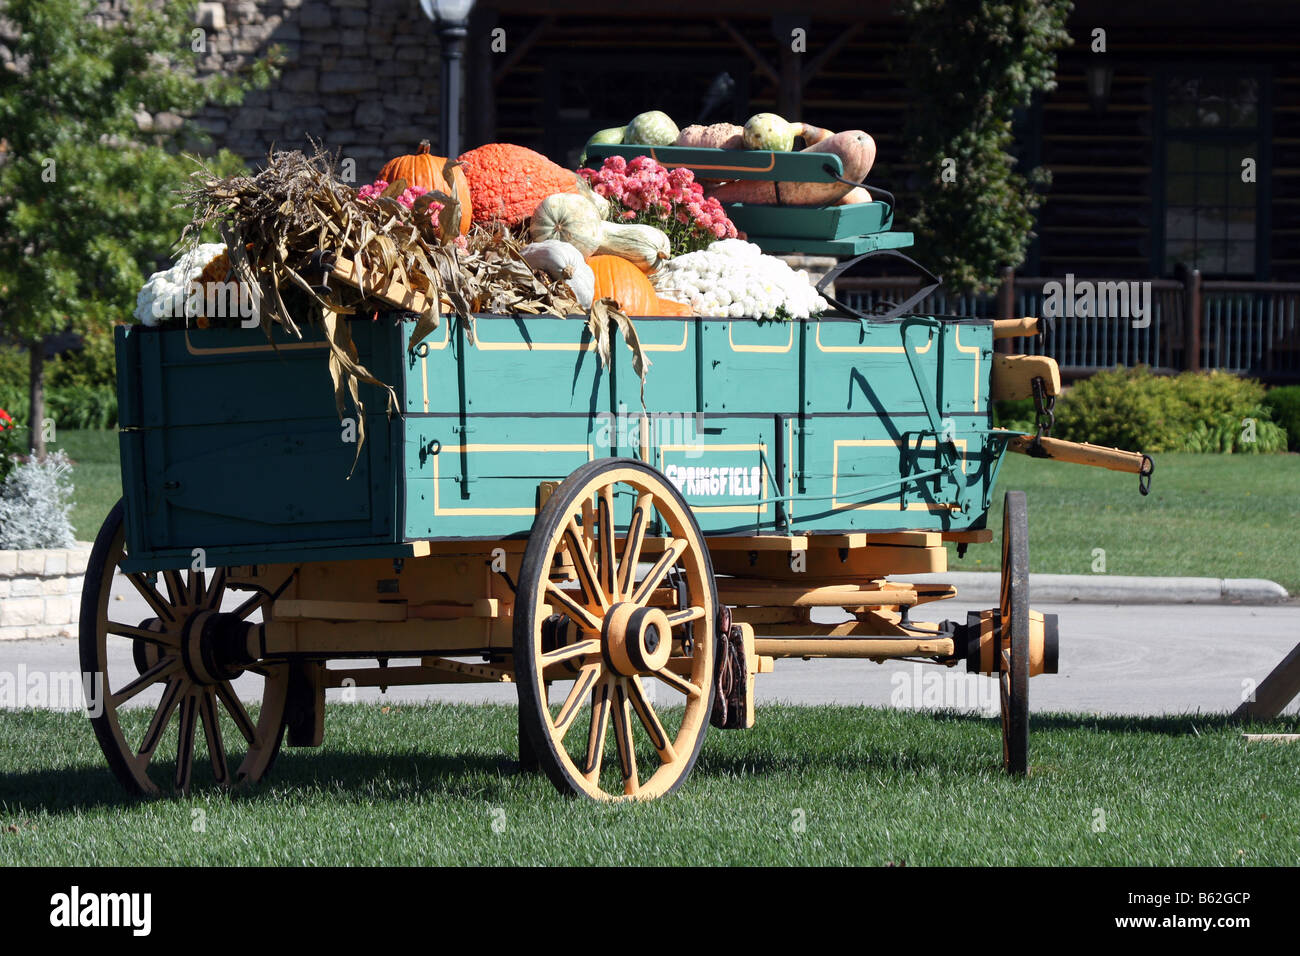 Fall Decorations In A Wooden Springfield Wagon Full Of Gourds Stock